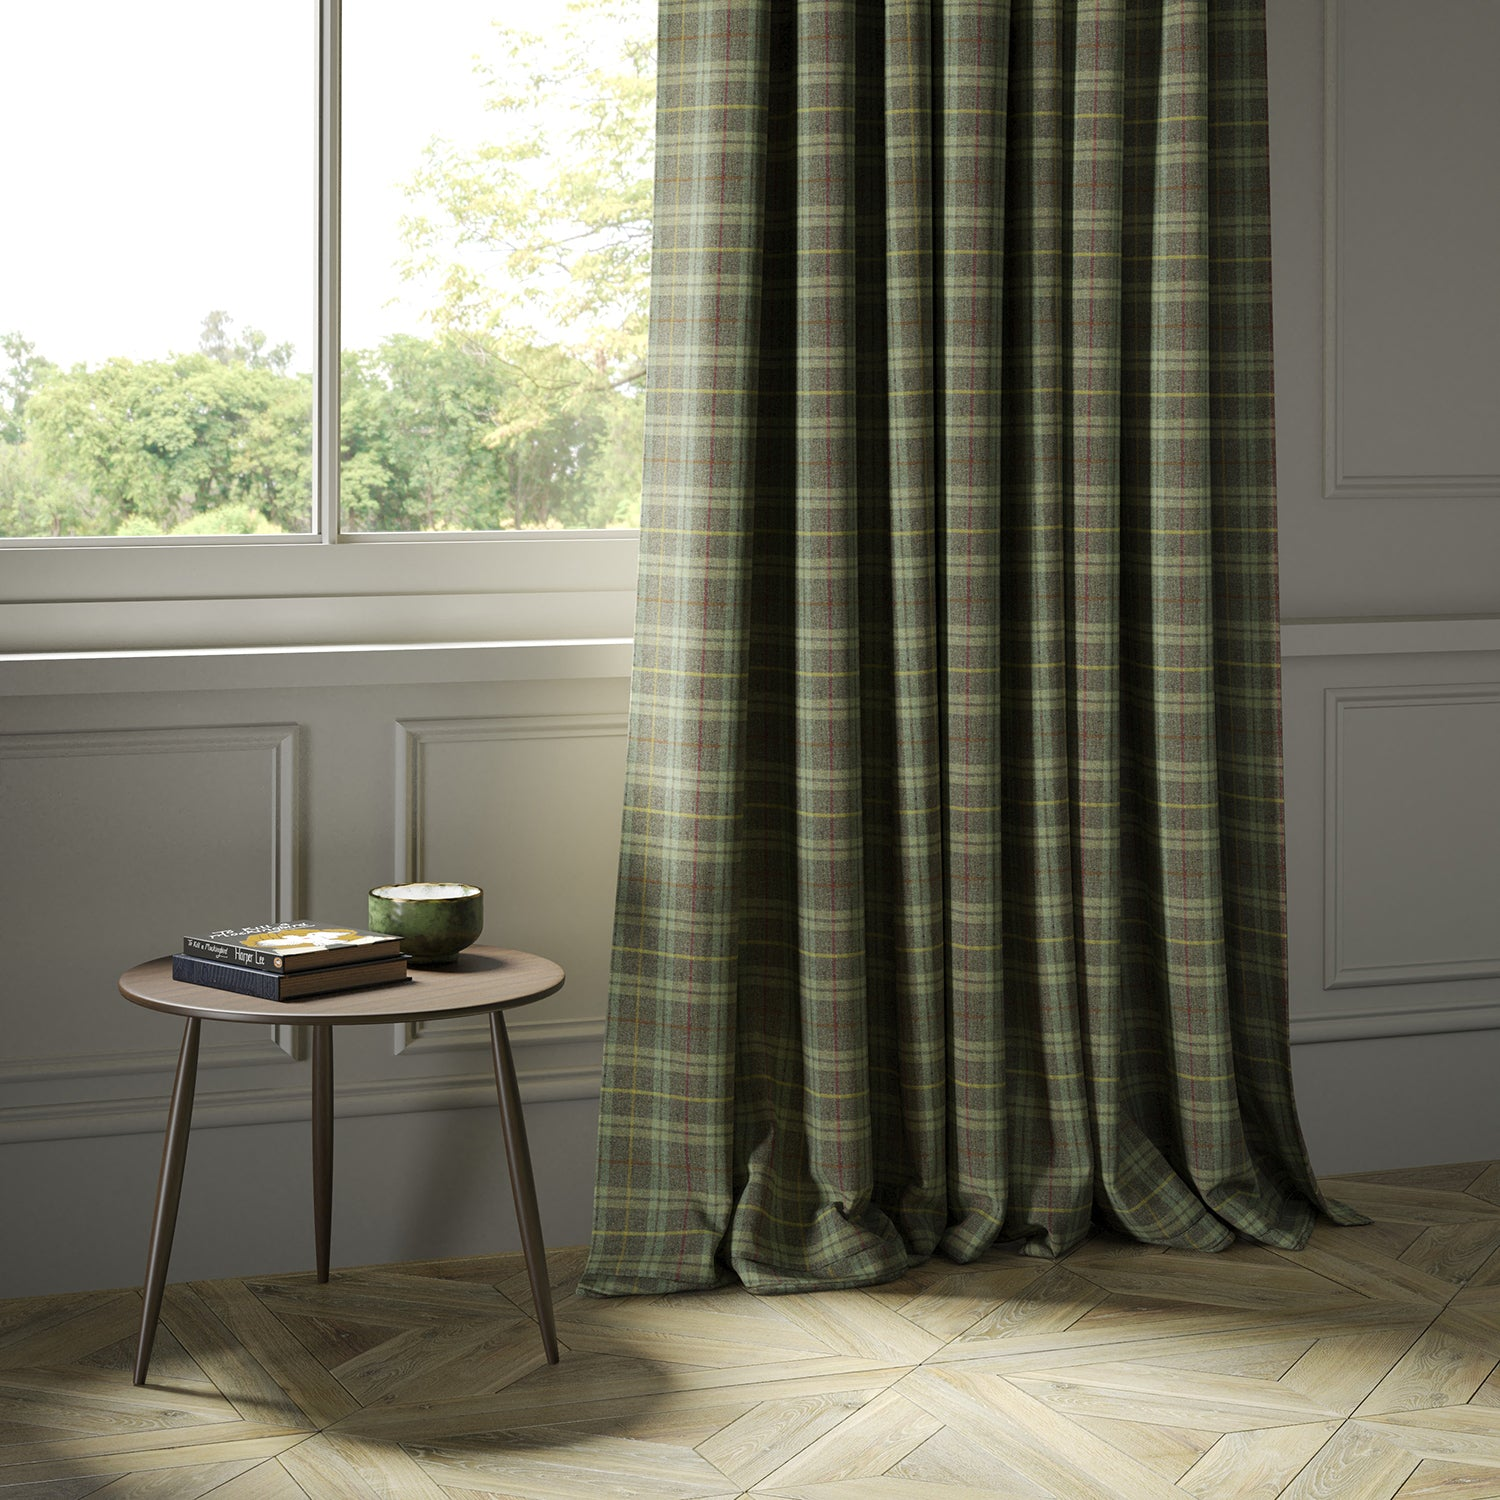 Curtains in a green Scottish wool plaid check fabric